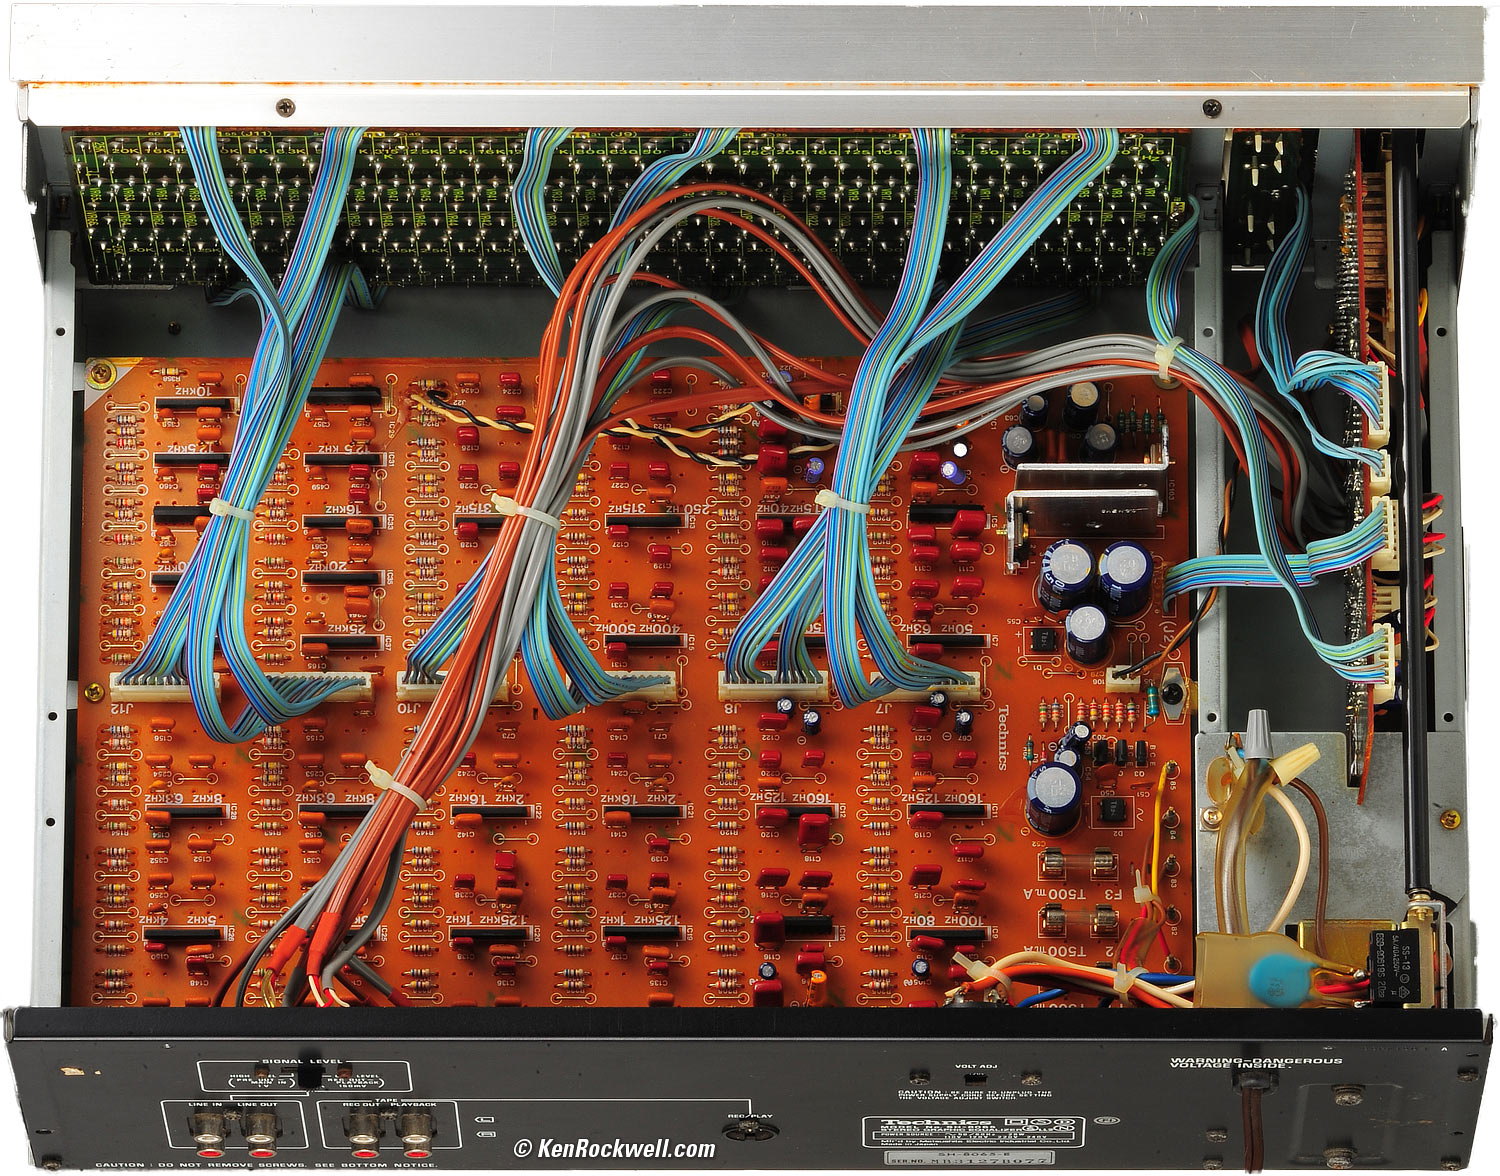 hight resolution of technics sh 8065 33 band stereo graphic equalizer 1982 1987 wiring diagram for a technics equalizer get free image about wiring